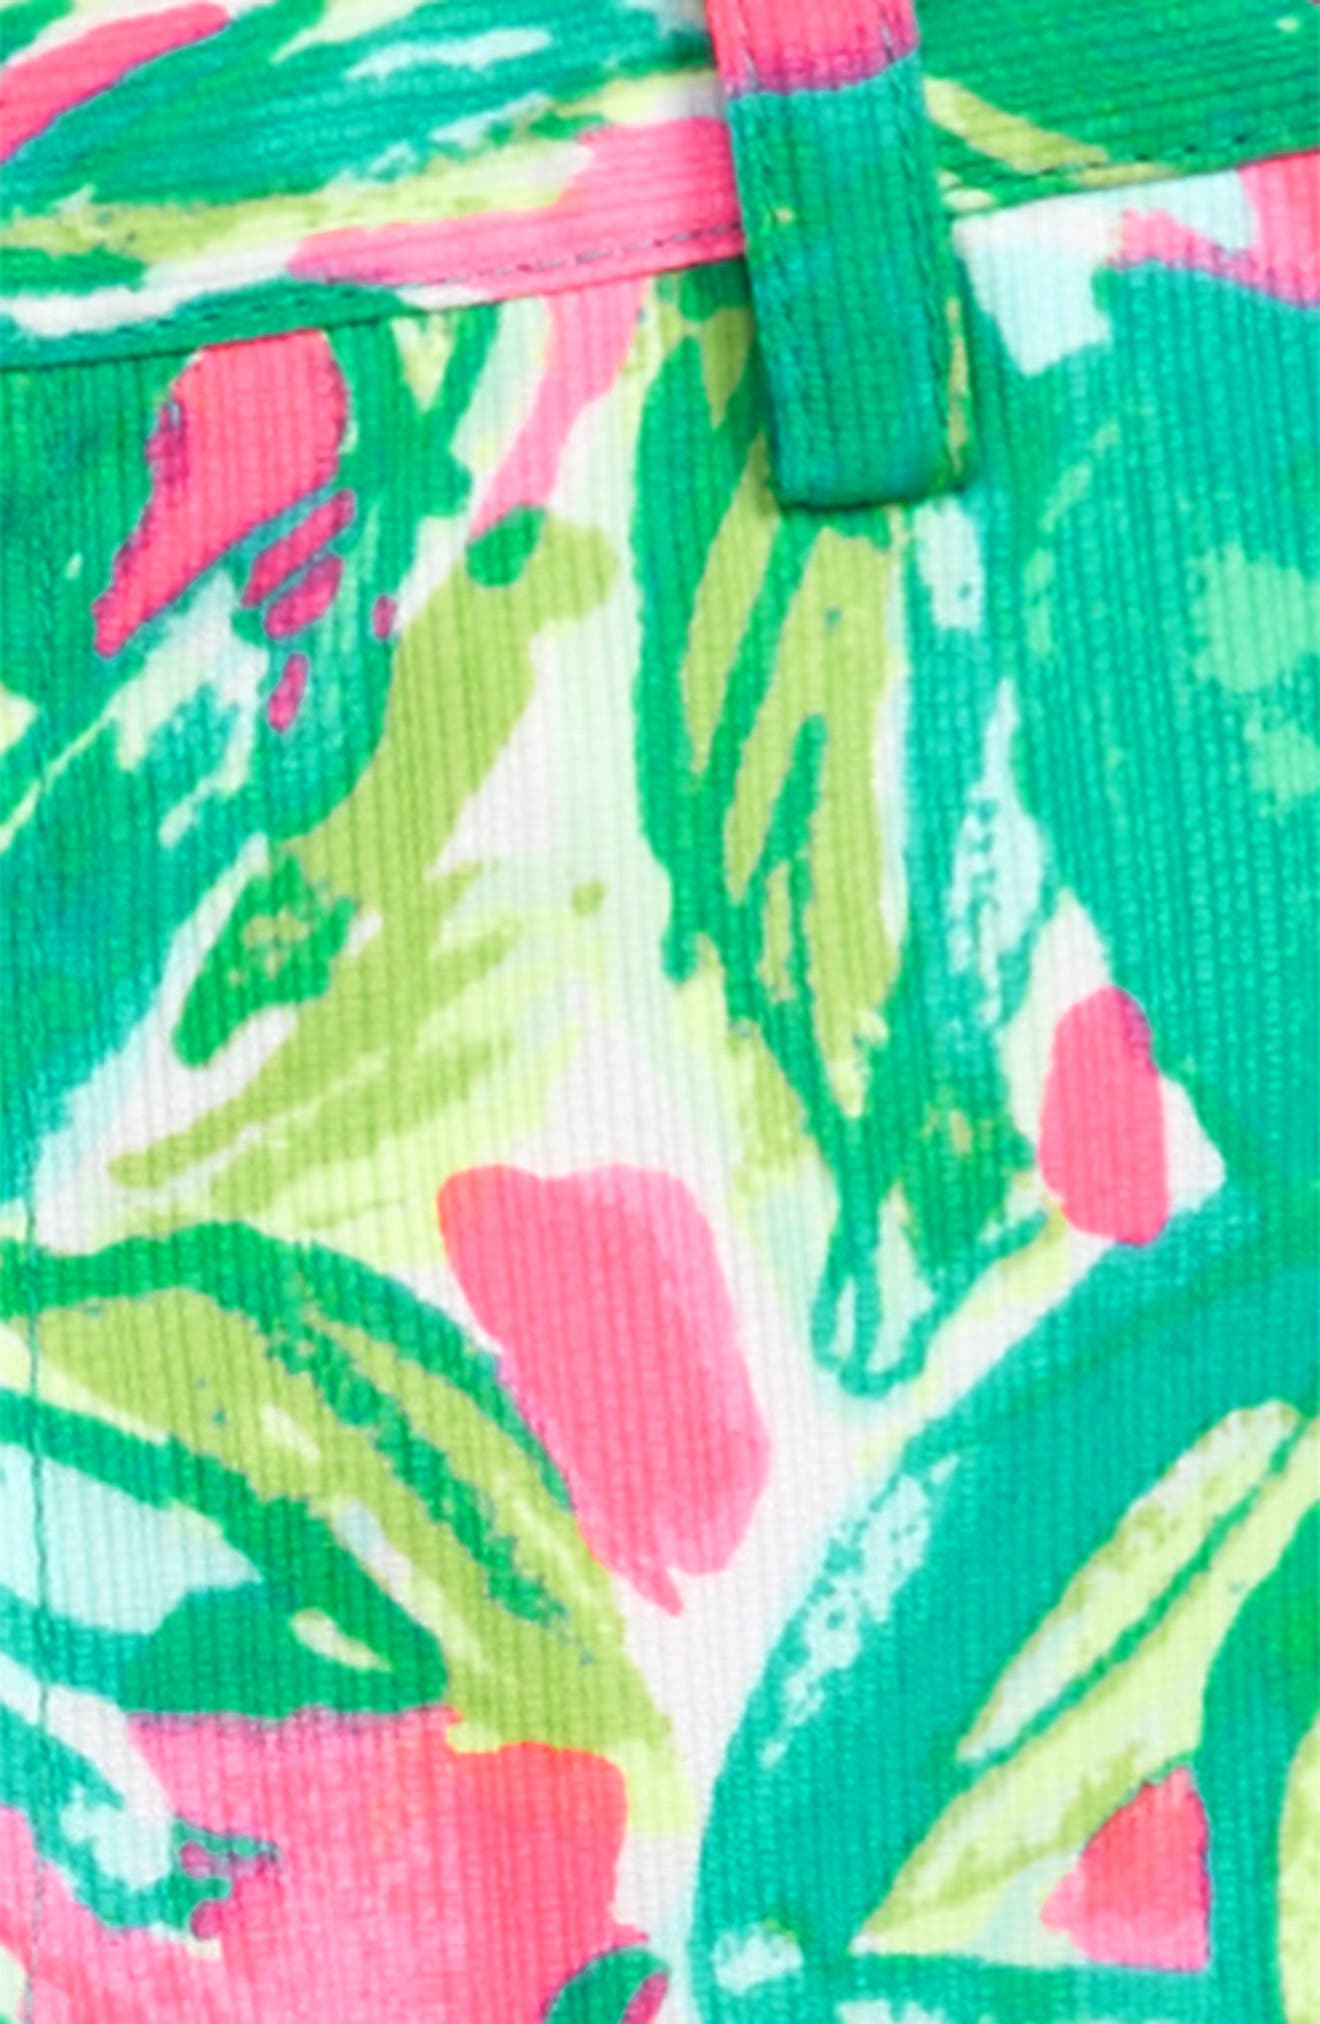 Lily Pulitzer Beaumont Print Shorts,                             Alternate thumbnail 2, color,                             Pink Sunset Guac And Roll